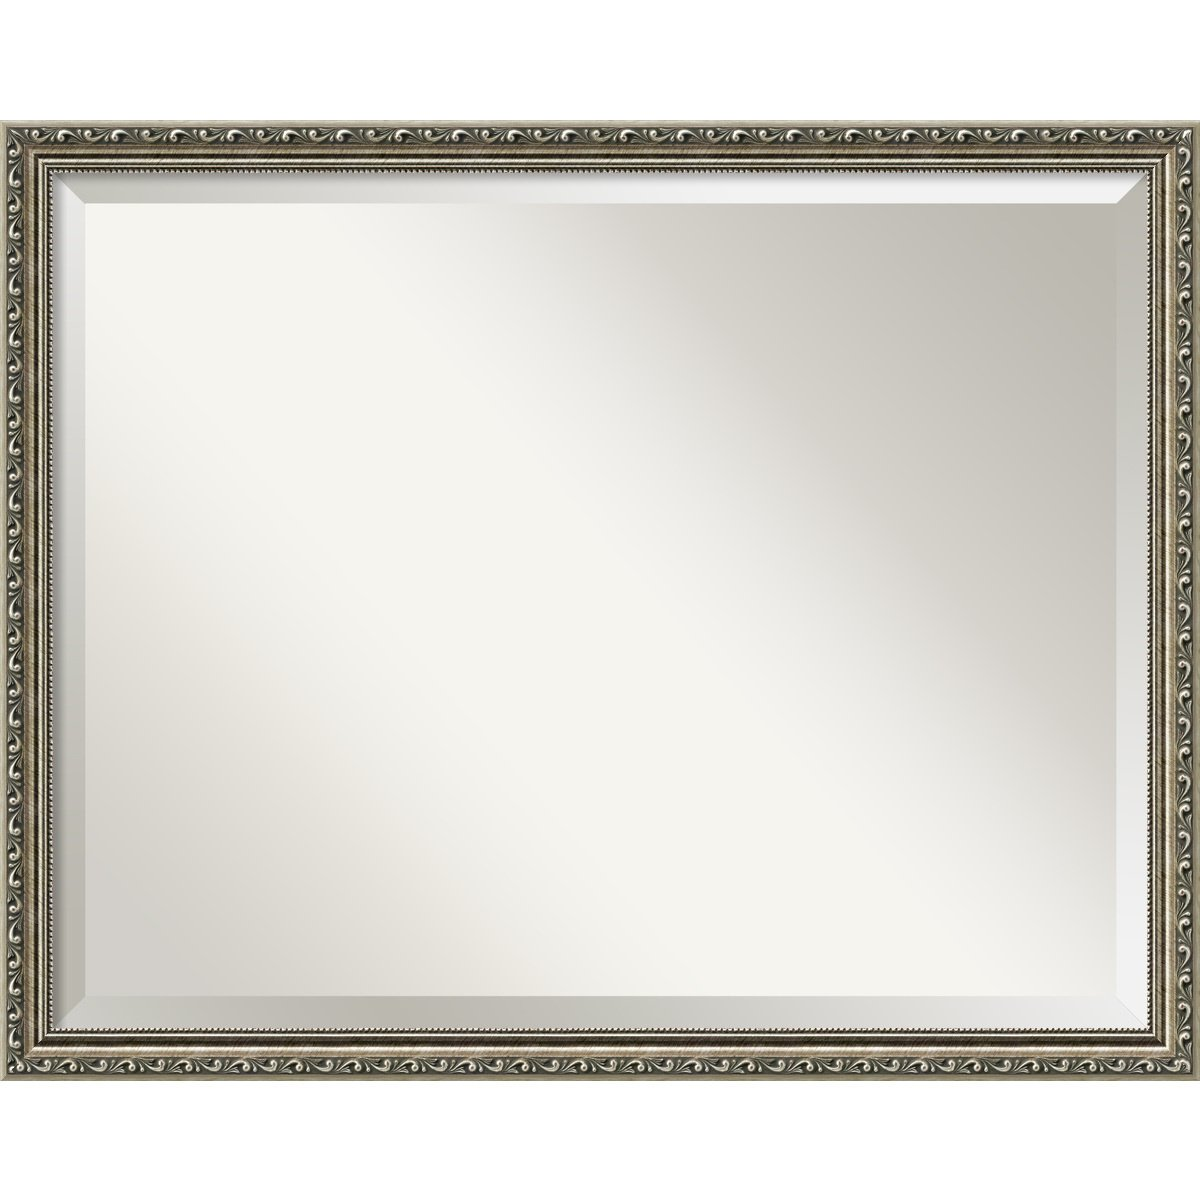 Amazon.com: Wall Mirror Large, Parisian Silver Wood: Outer Size 30 x ...